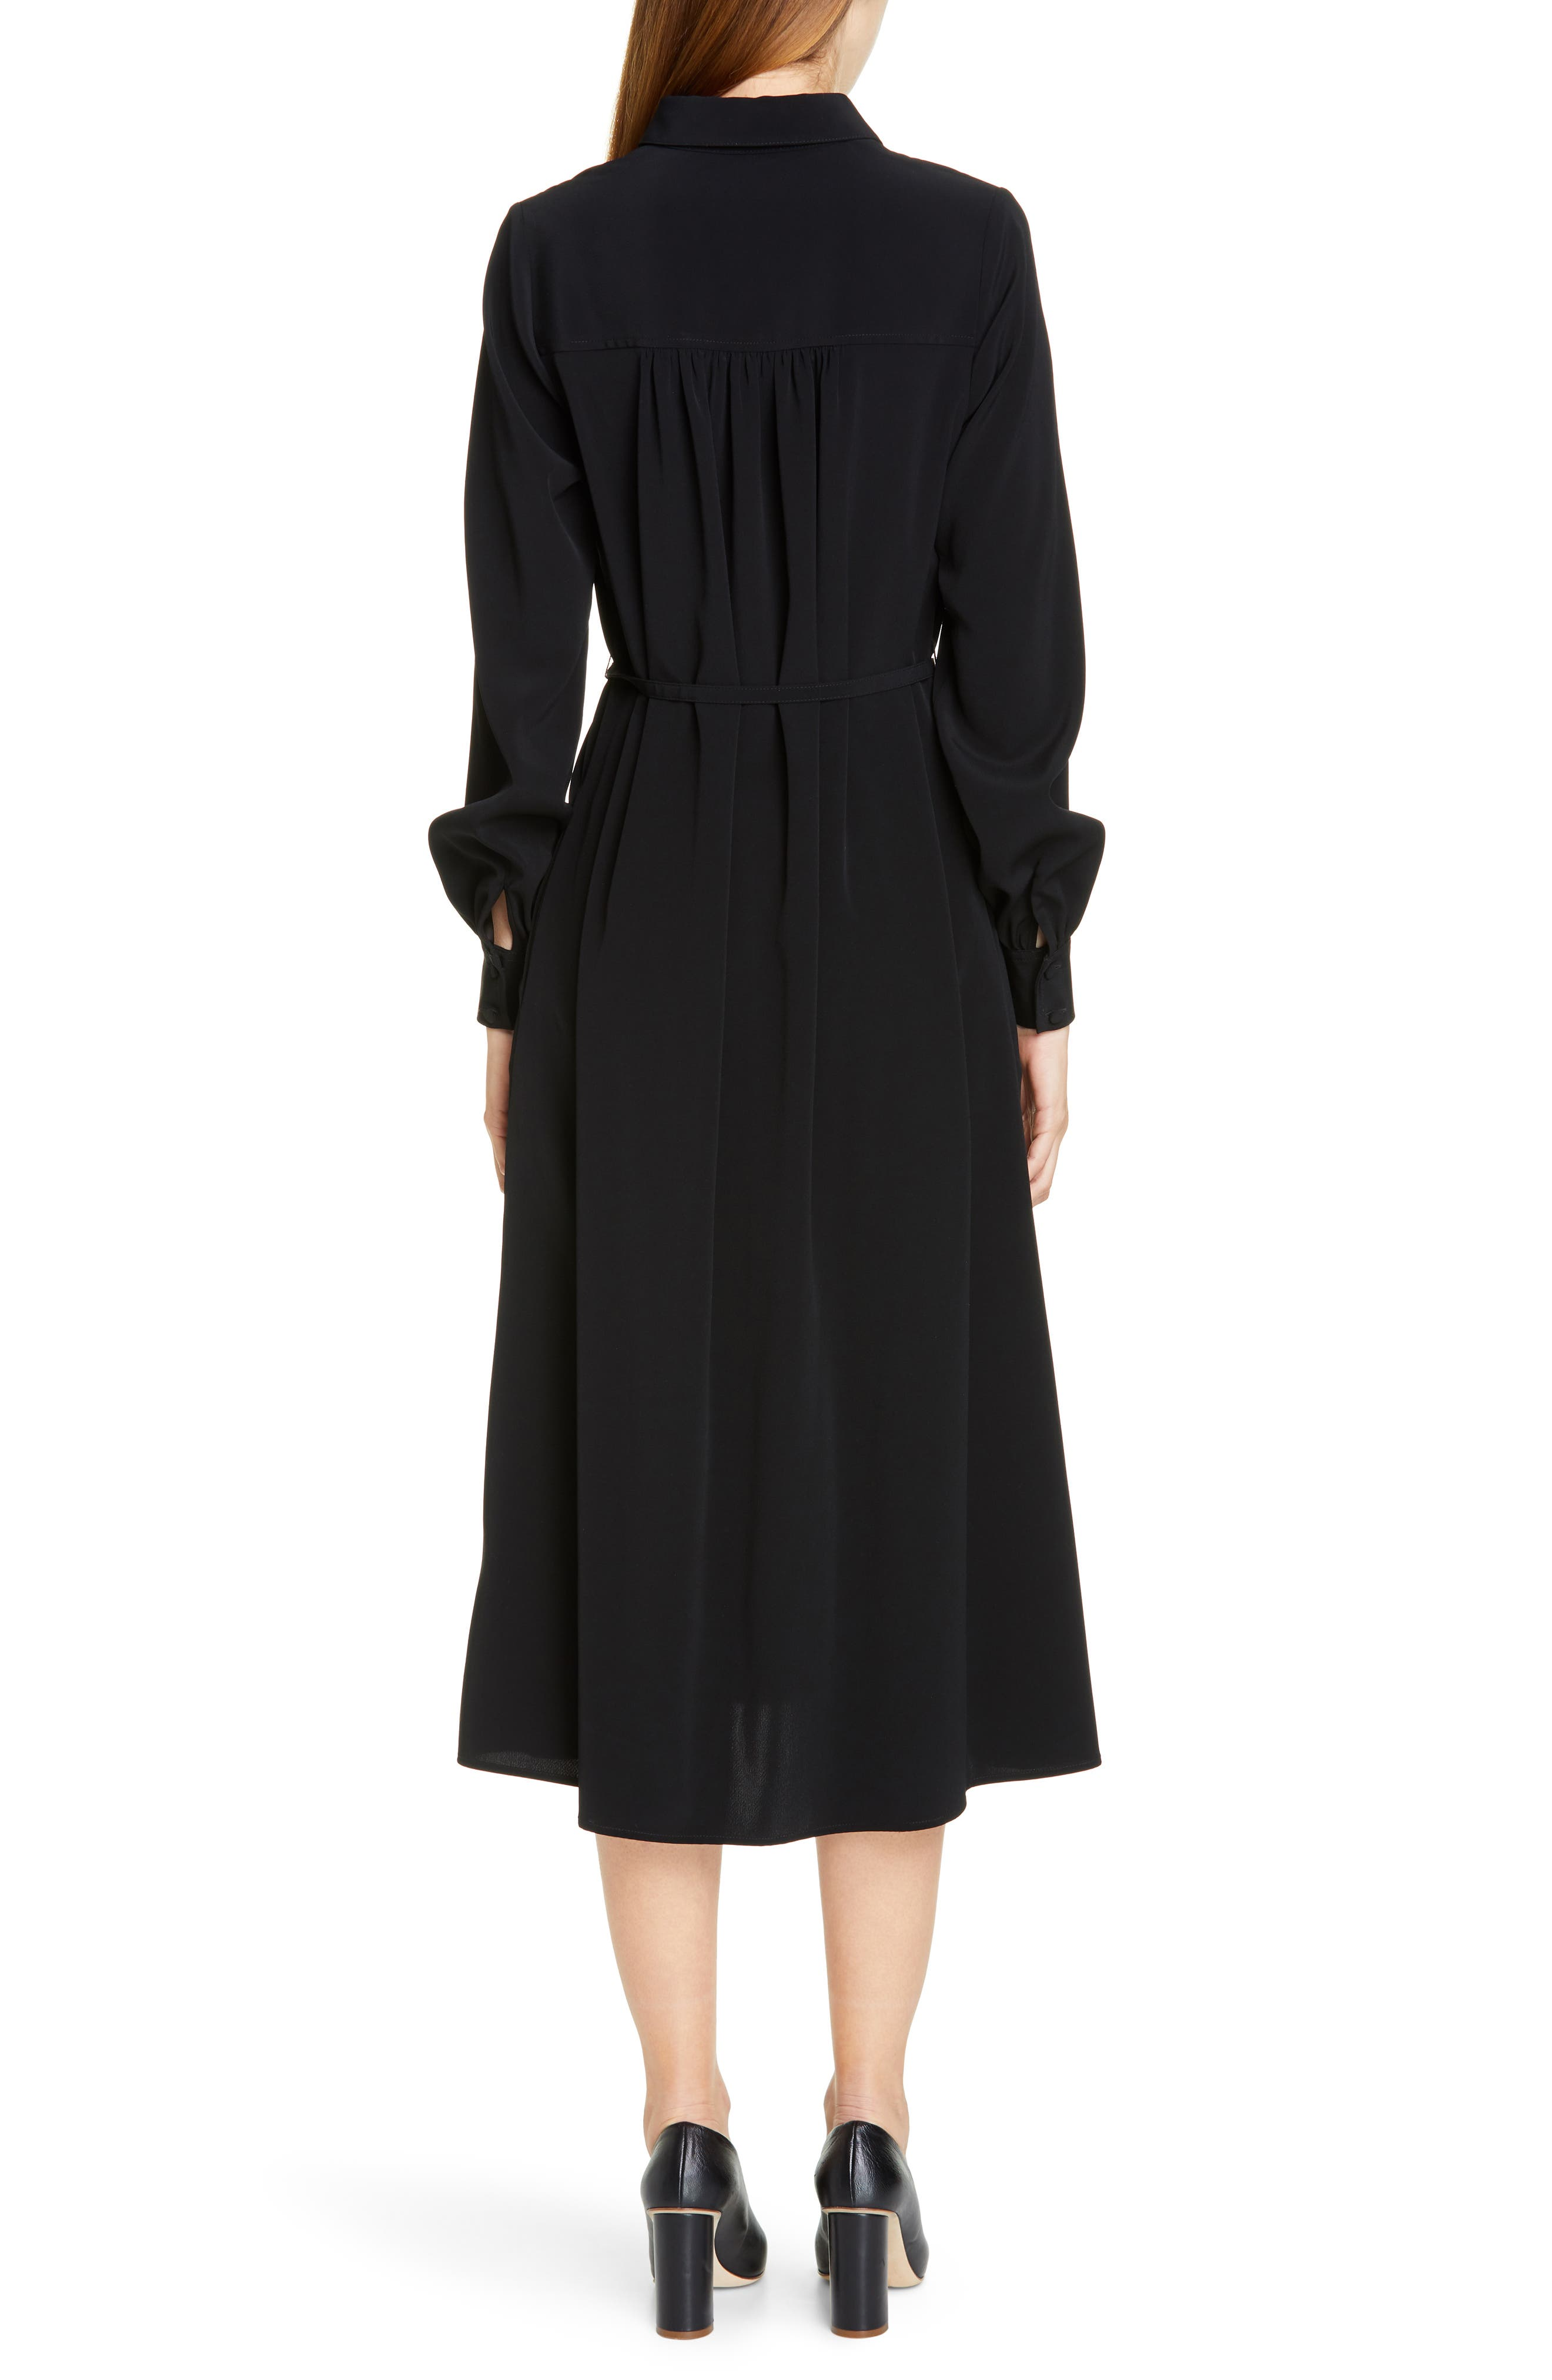 CO,                             Belted Shirtdress,                             Alternate thumbnail 2, color,                             BLACK